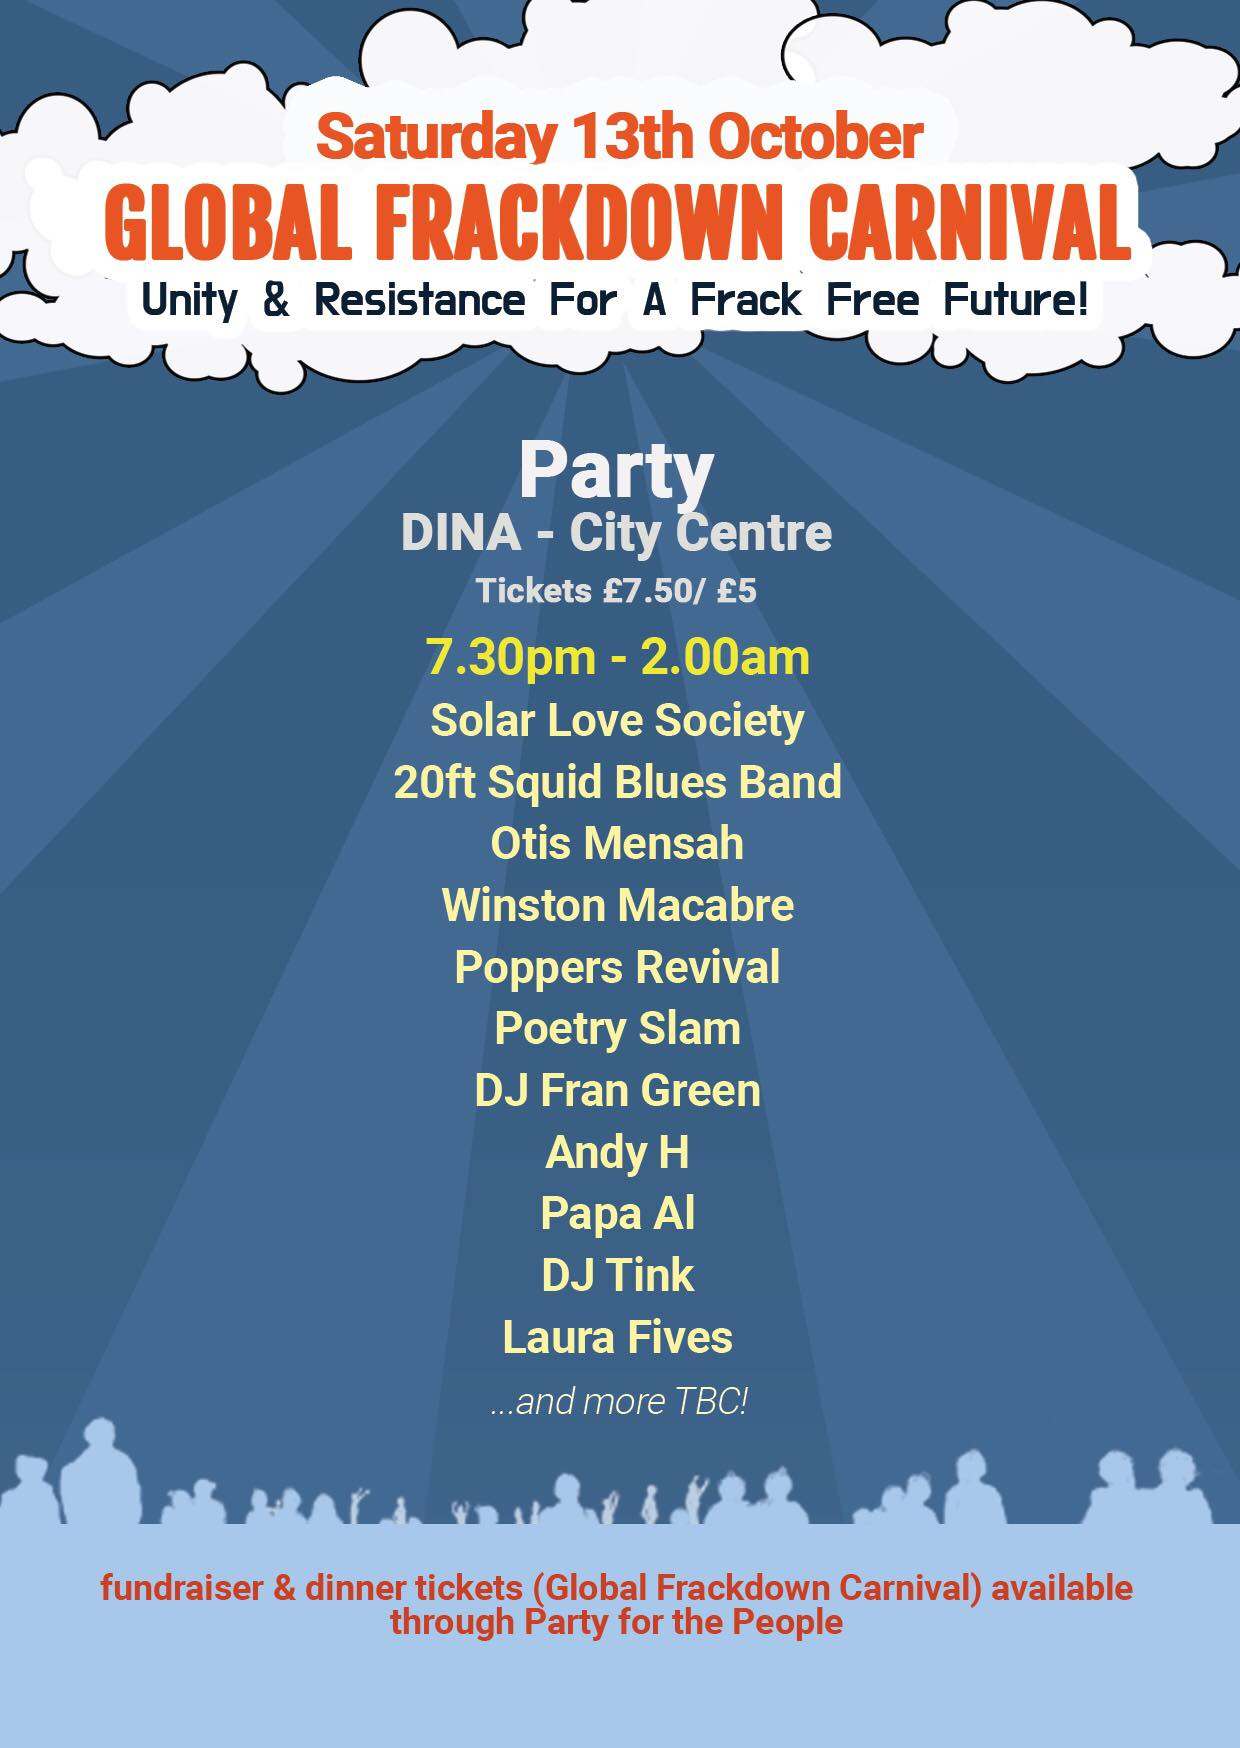 Woodsetts Against Fracking On Twitter We Are Getting Excited Less Than 3 Weeks To Go To This One Off Event On Global Frackdown Day Https T Co Tupmffahl9 Https T Co Yheexppm3d The Daytime Is Free For All